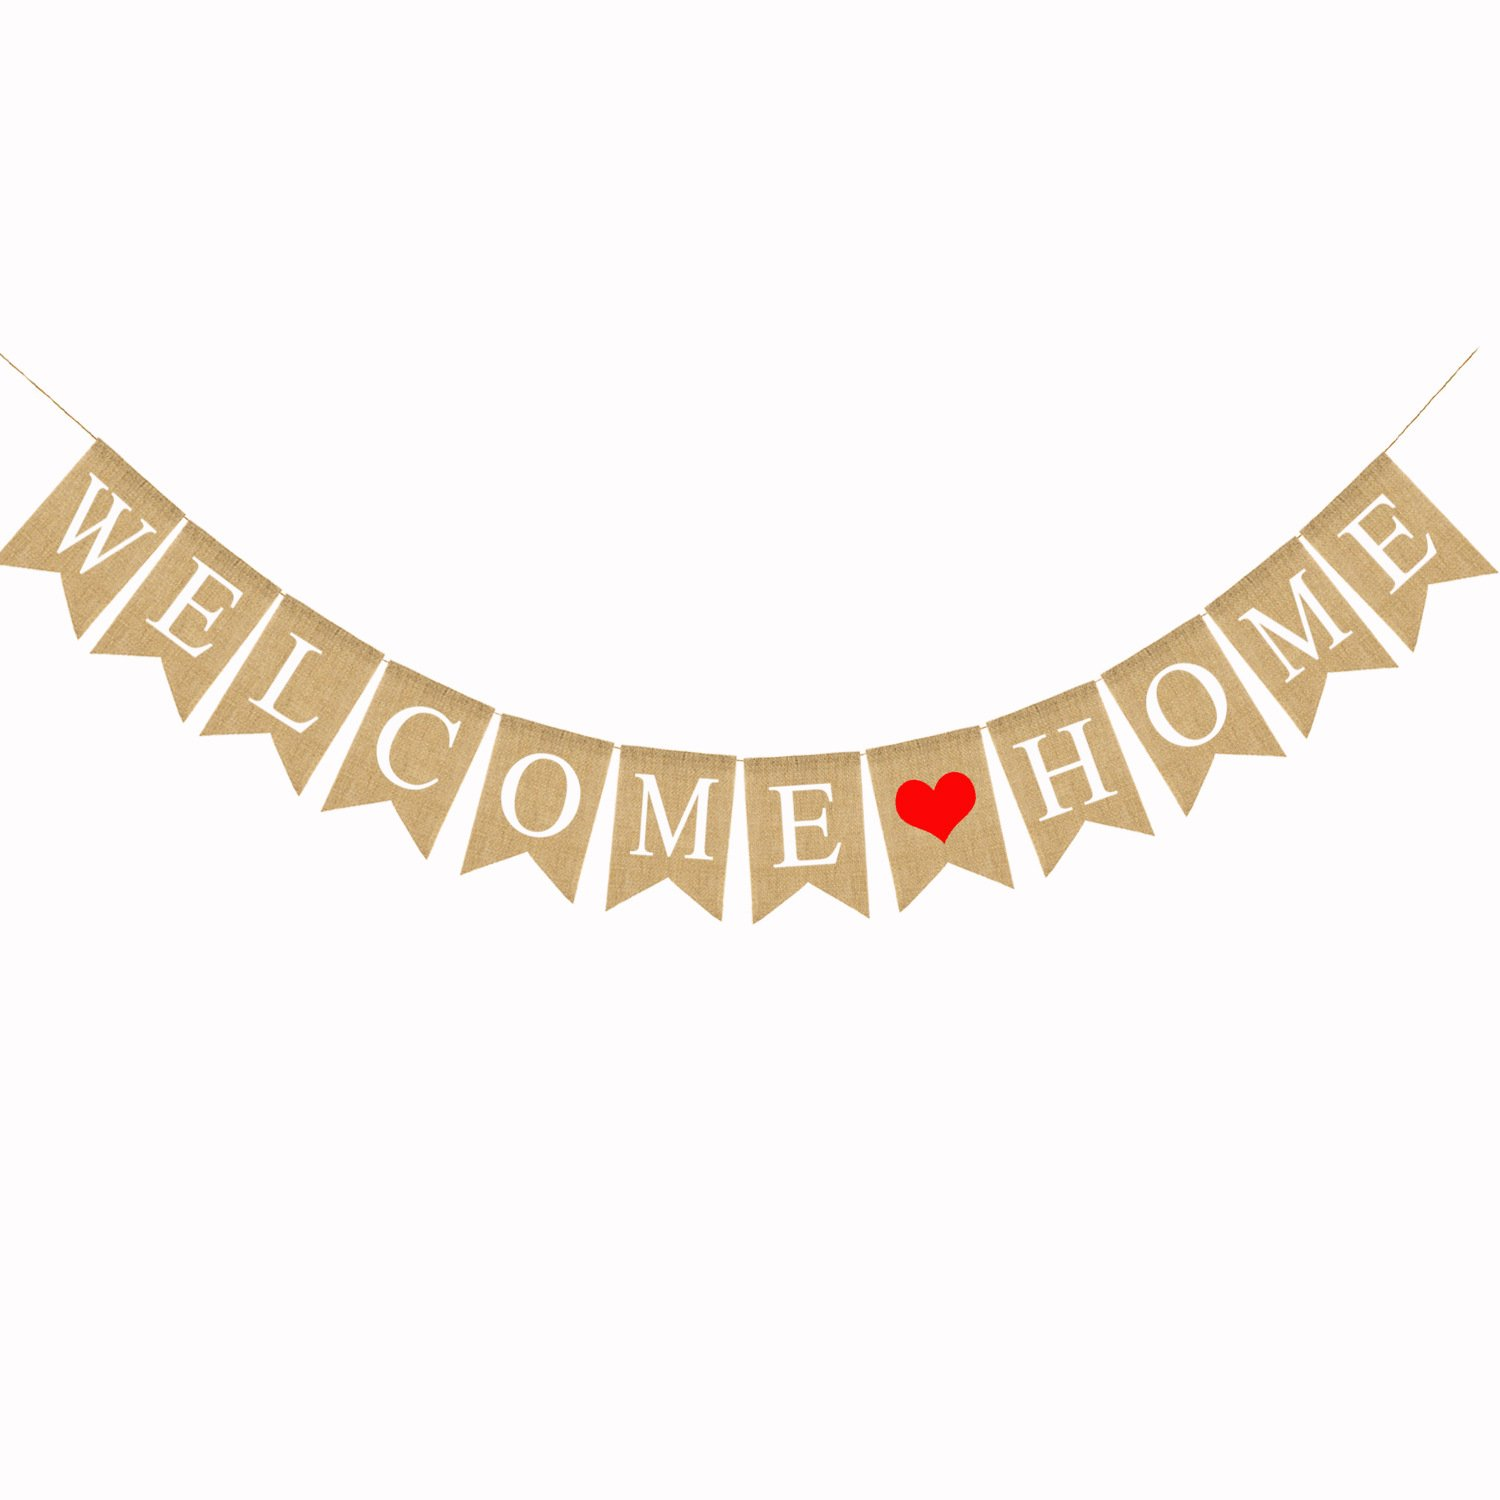 Jute Burlap Welcome Home Banner with Heart Home Mantel Fireplace Decoration